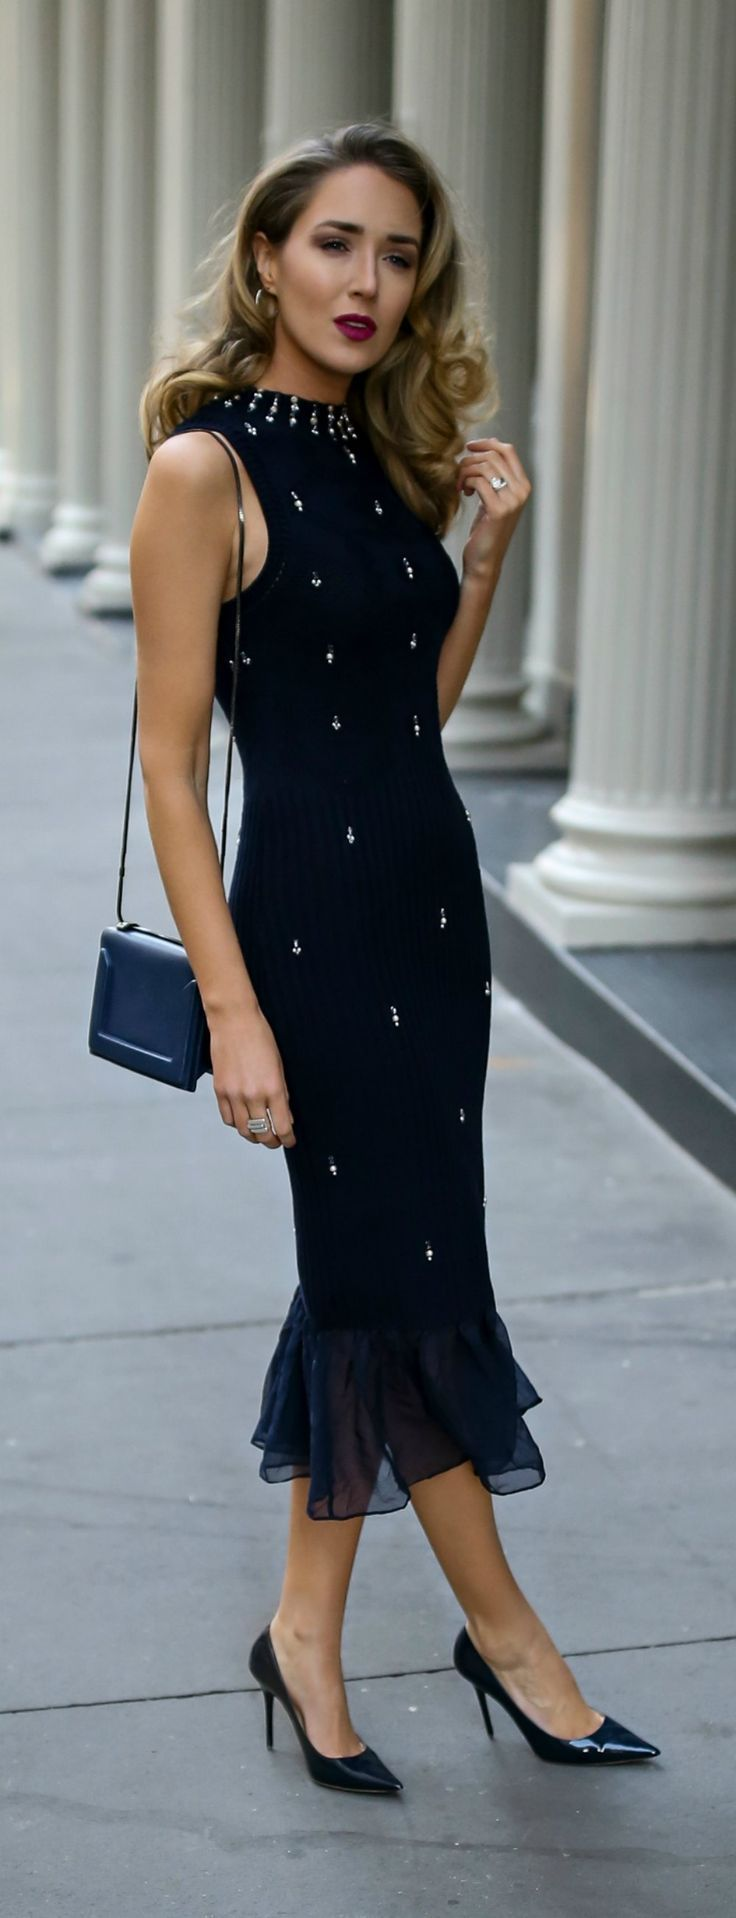 Hanukkah Dress // Navy ribbed midi sweater dress with pearl and crystal embellishments, classic black pumps and a black crossbody bag {Jonathan Simkhai, what to wear on Hanukkah, Hanukkah 2017, festive style, fall fashion, sweater dress, midi dress, fash